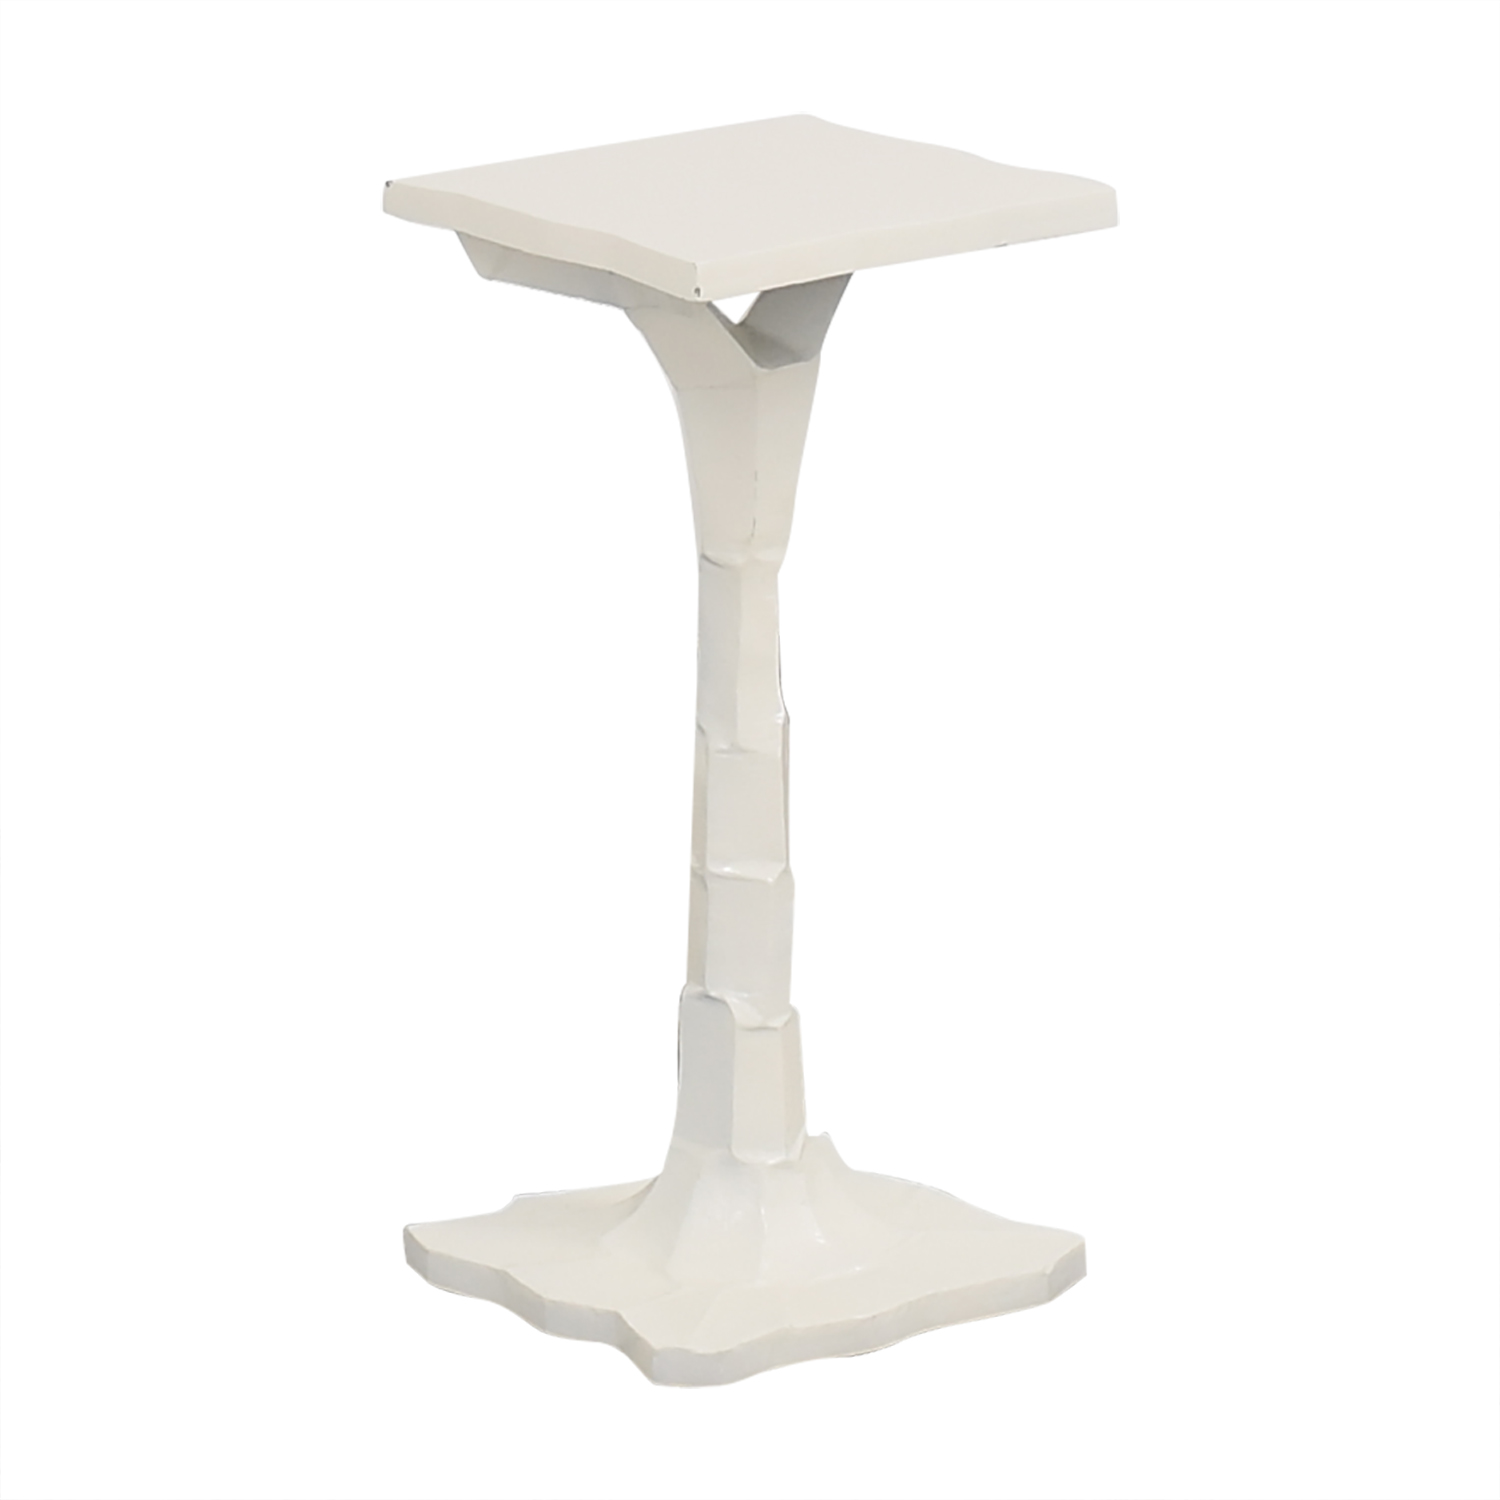 Pedestal Side Table dimensions